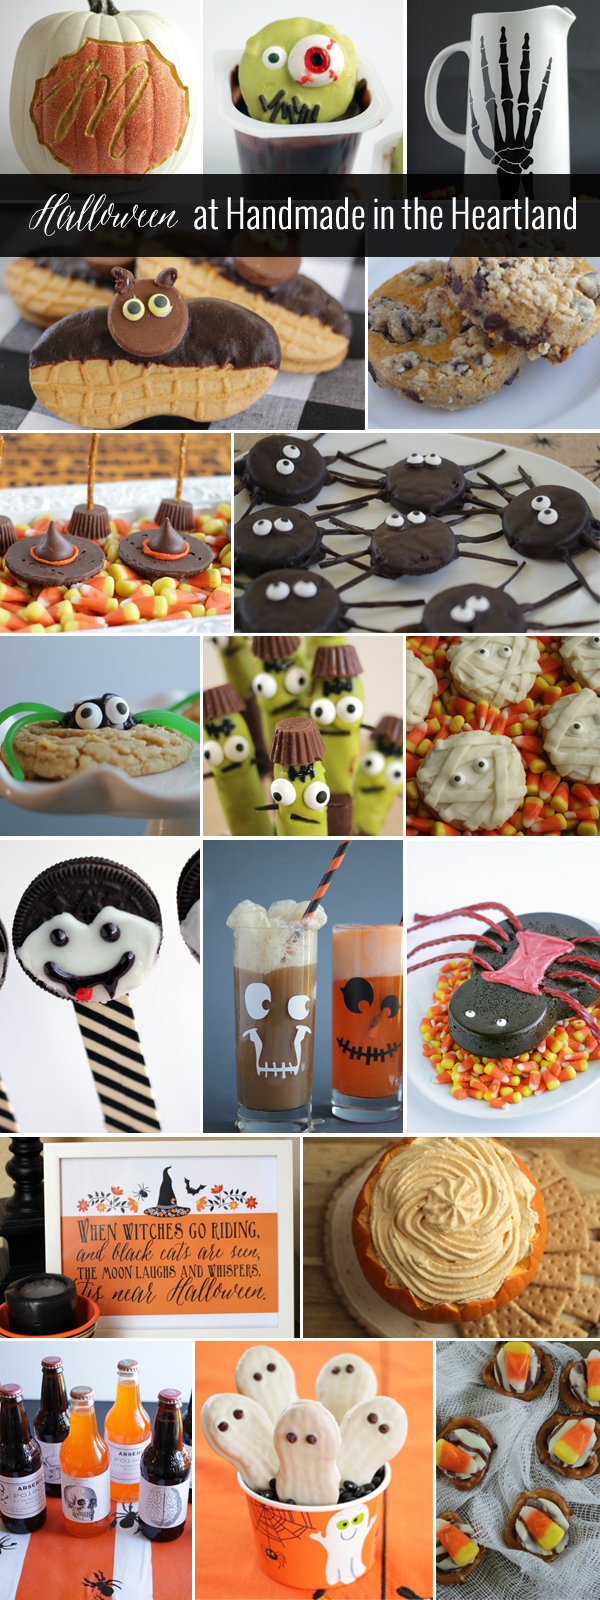 Halloween Recipes and Projects